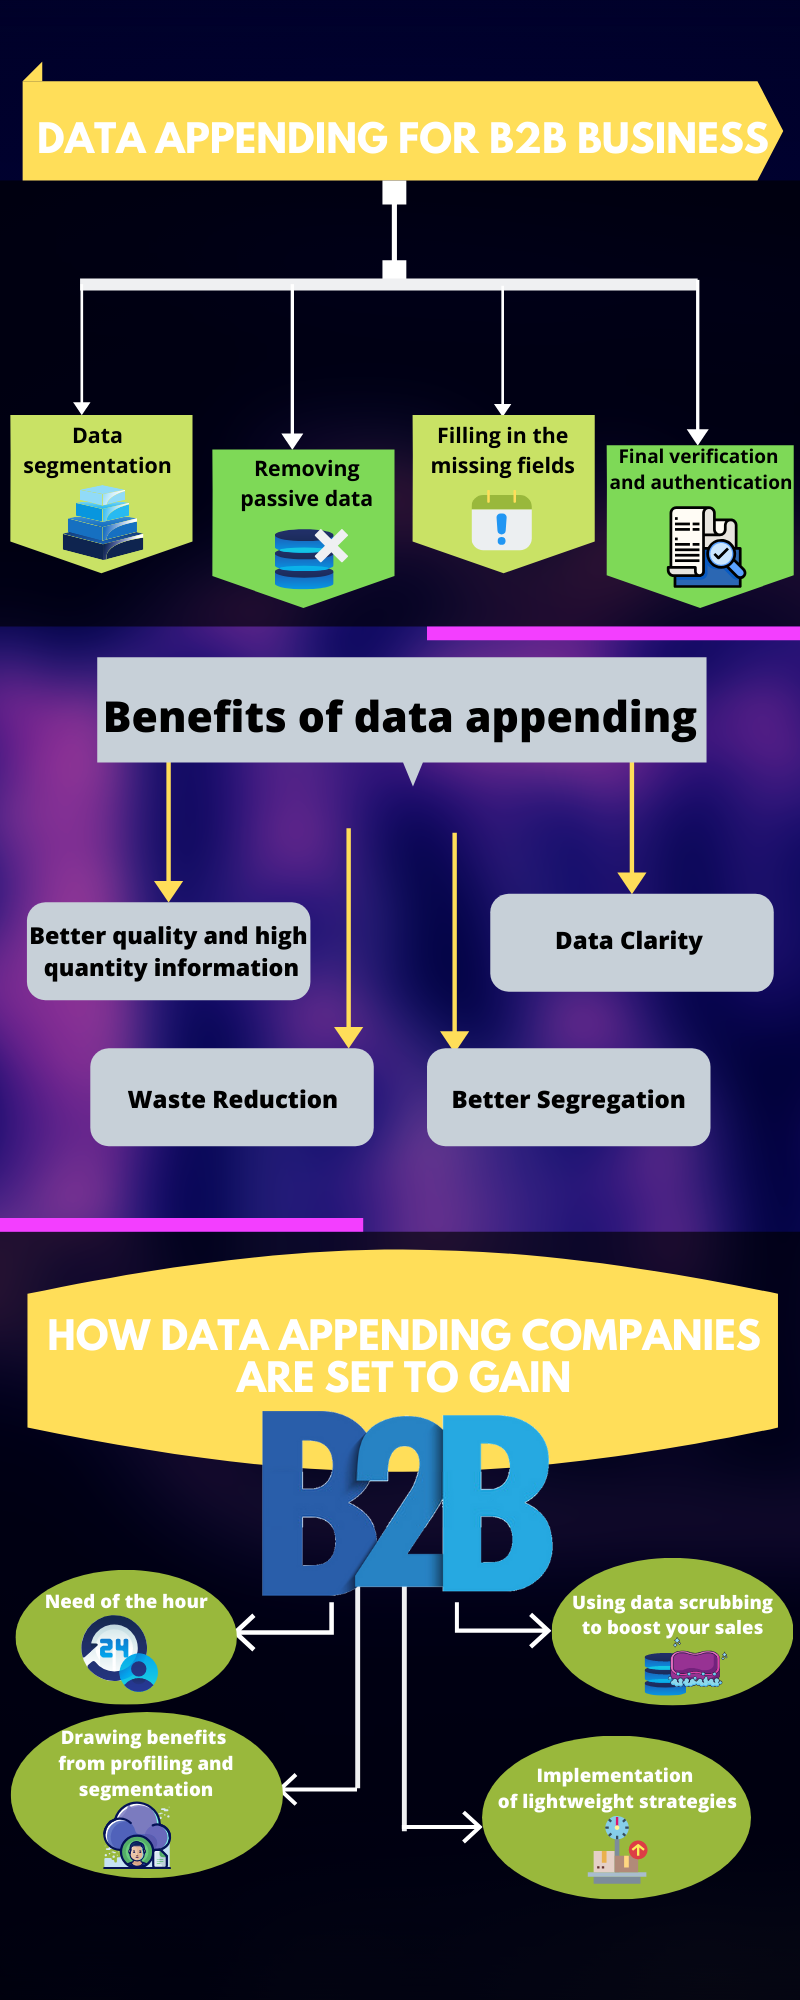 data  appending companies set to gain profit from covid-19